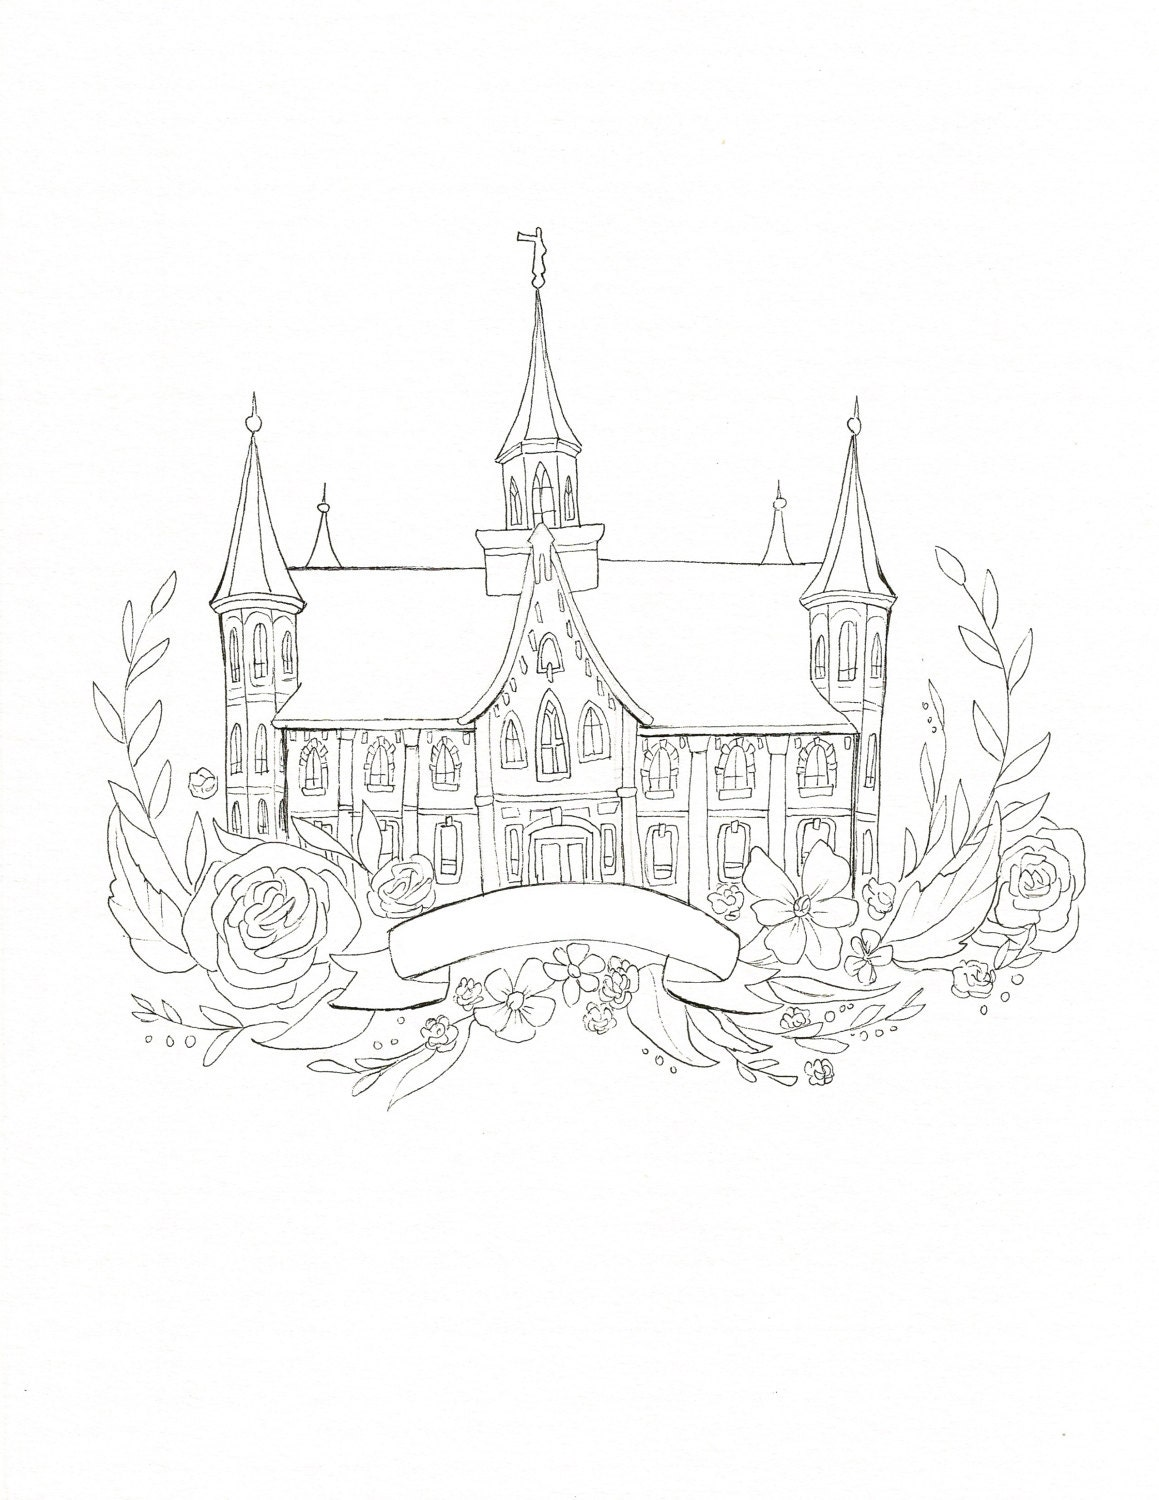 Coloring Book Lds Temples - Worksheet & Coloring Pages